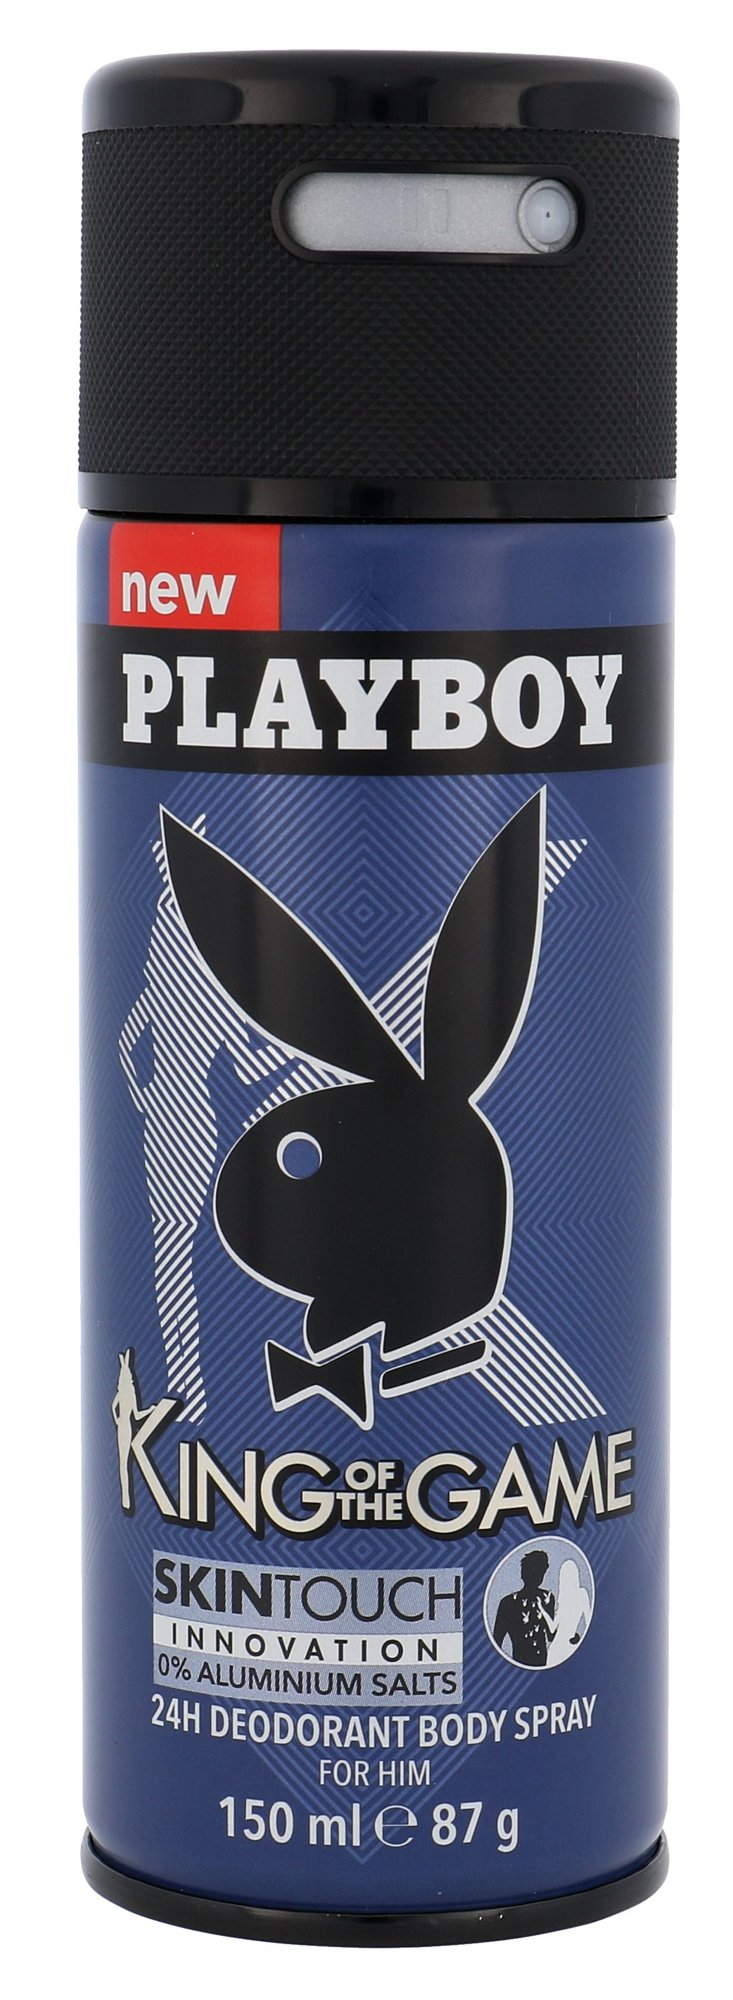 Playboy King of the Game For Him Deodorant 150ml